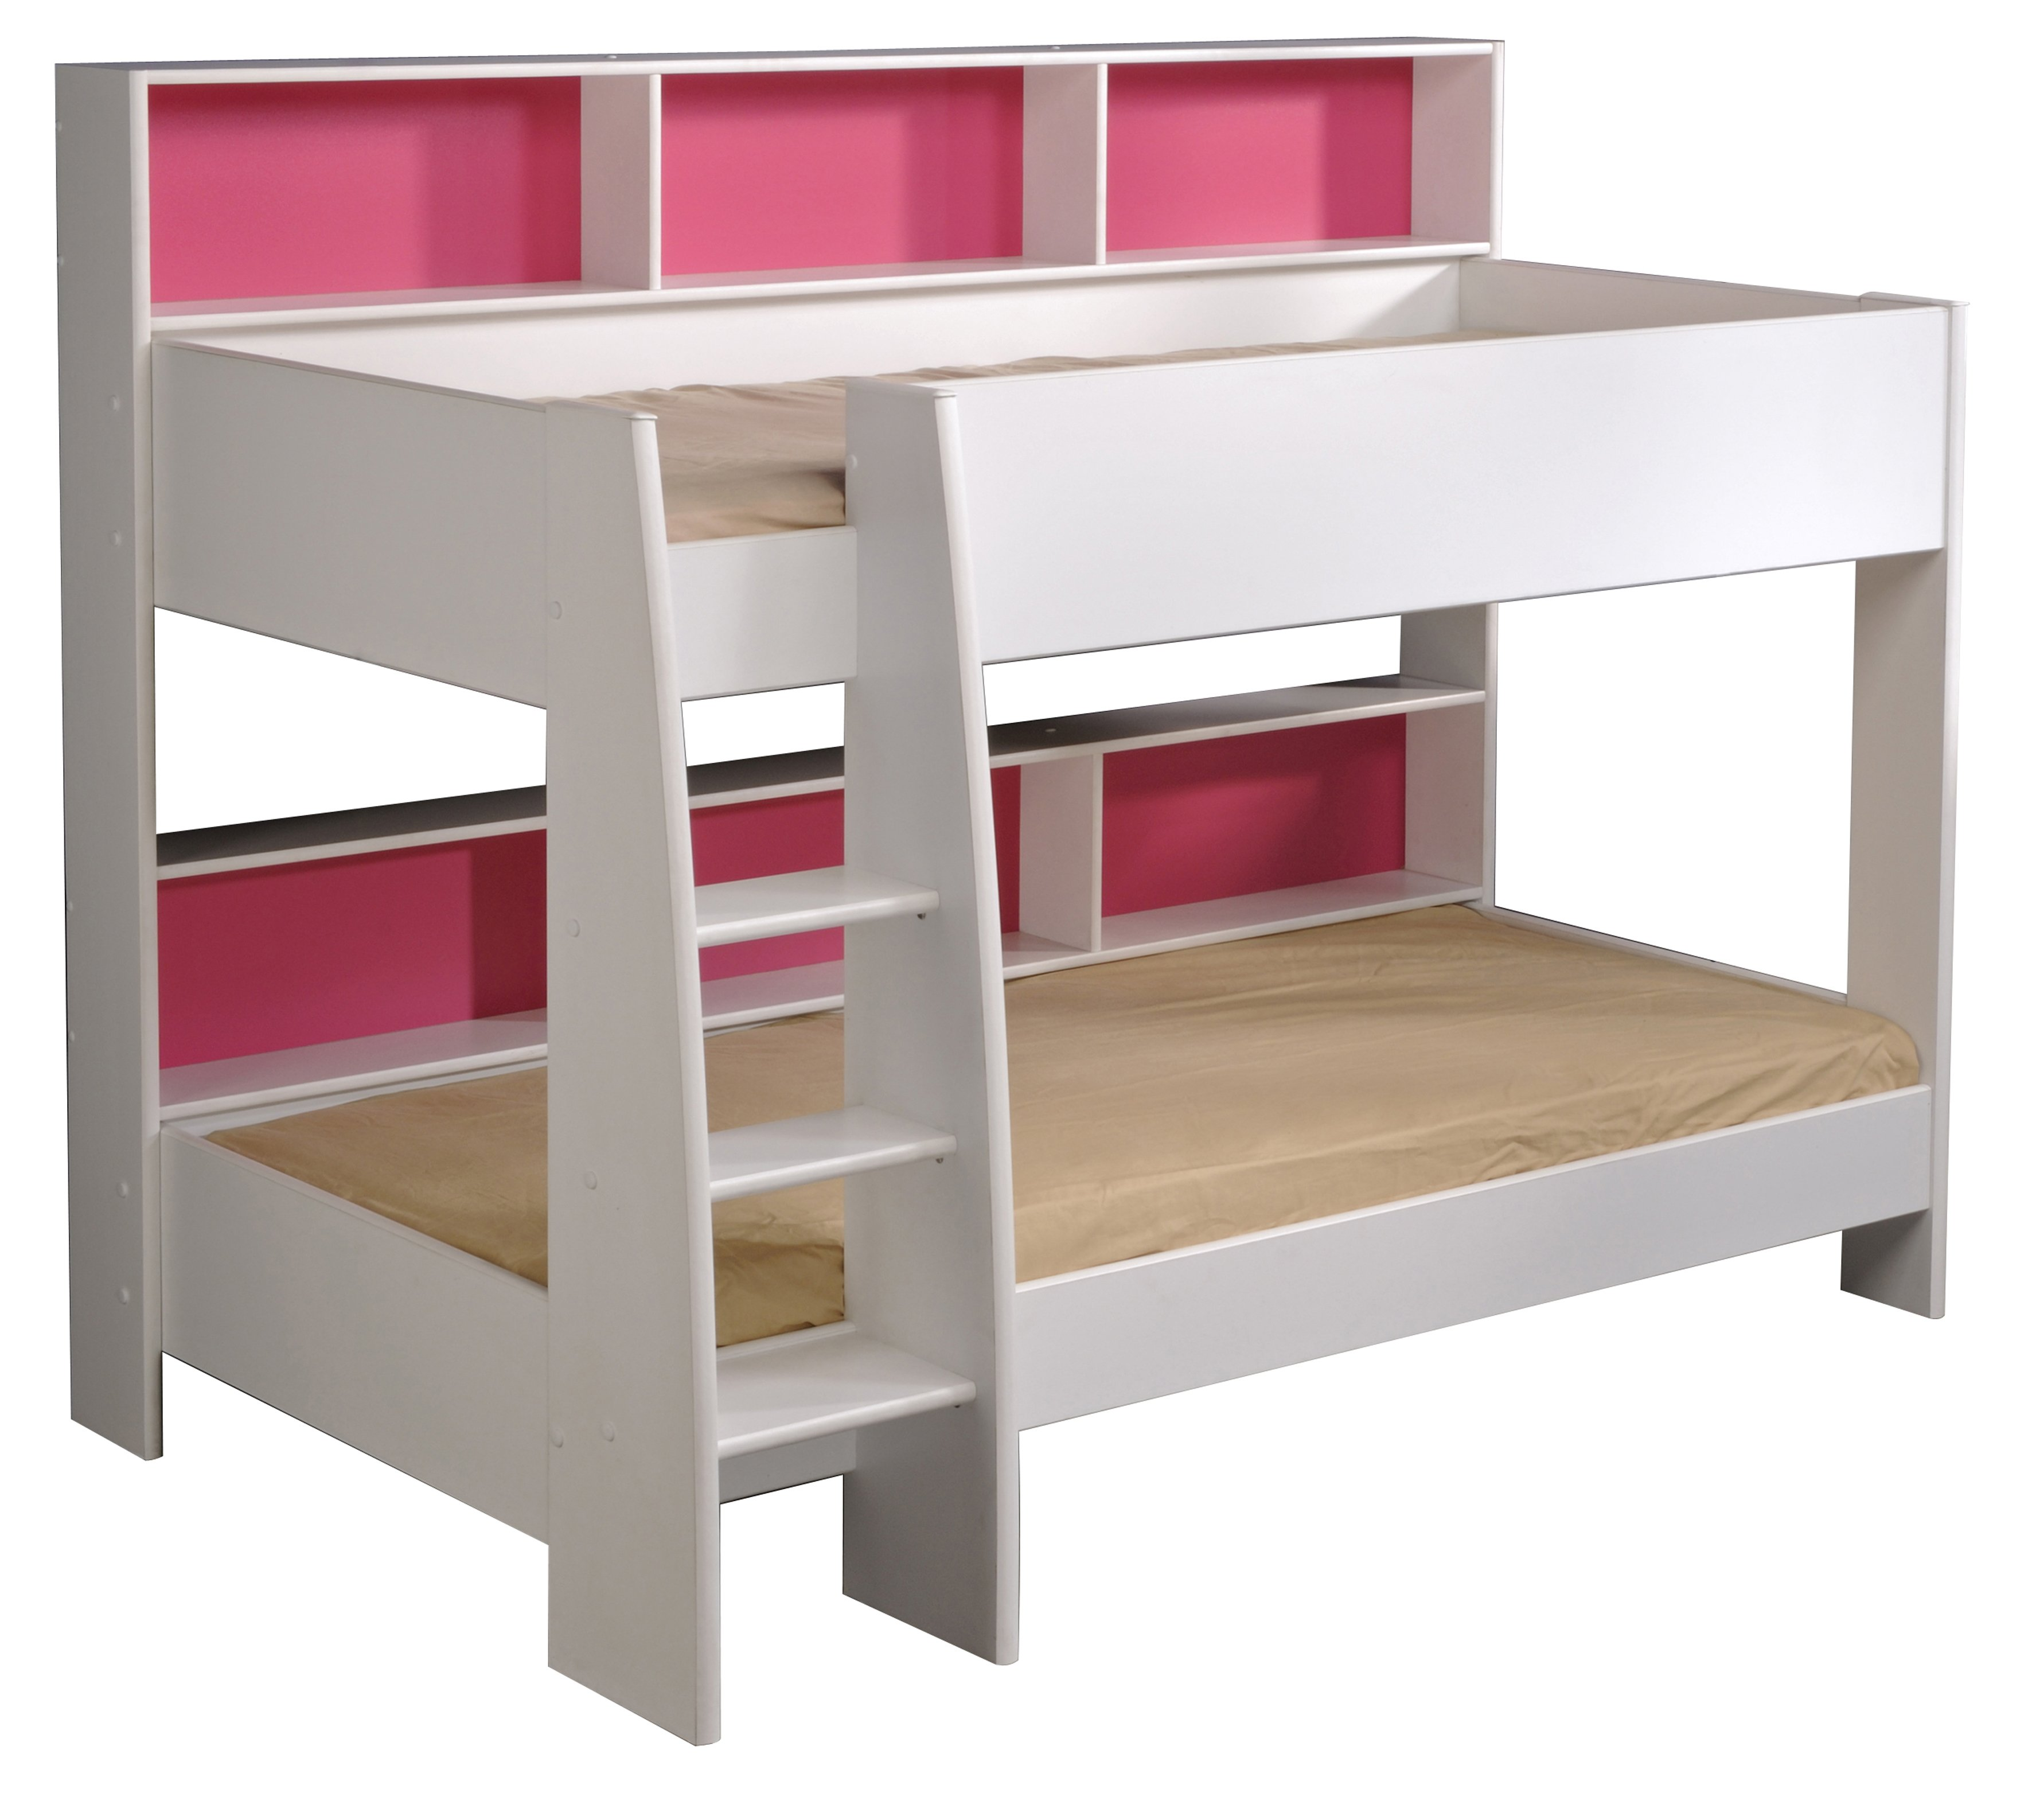 New Bookcase Toy Box White Finish Bedroom Playroom Child: For Children & Kids In S.A